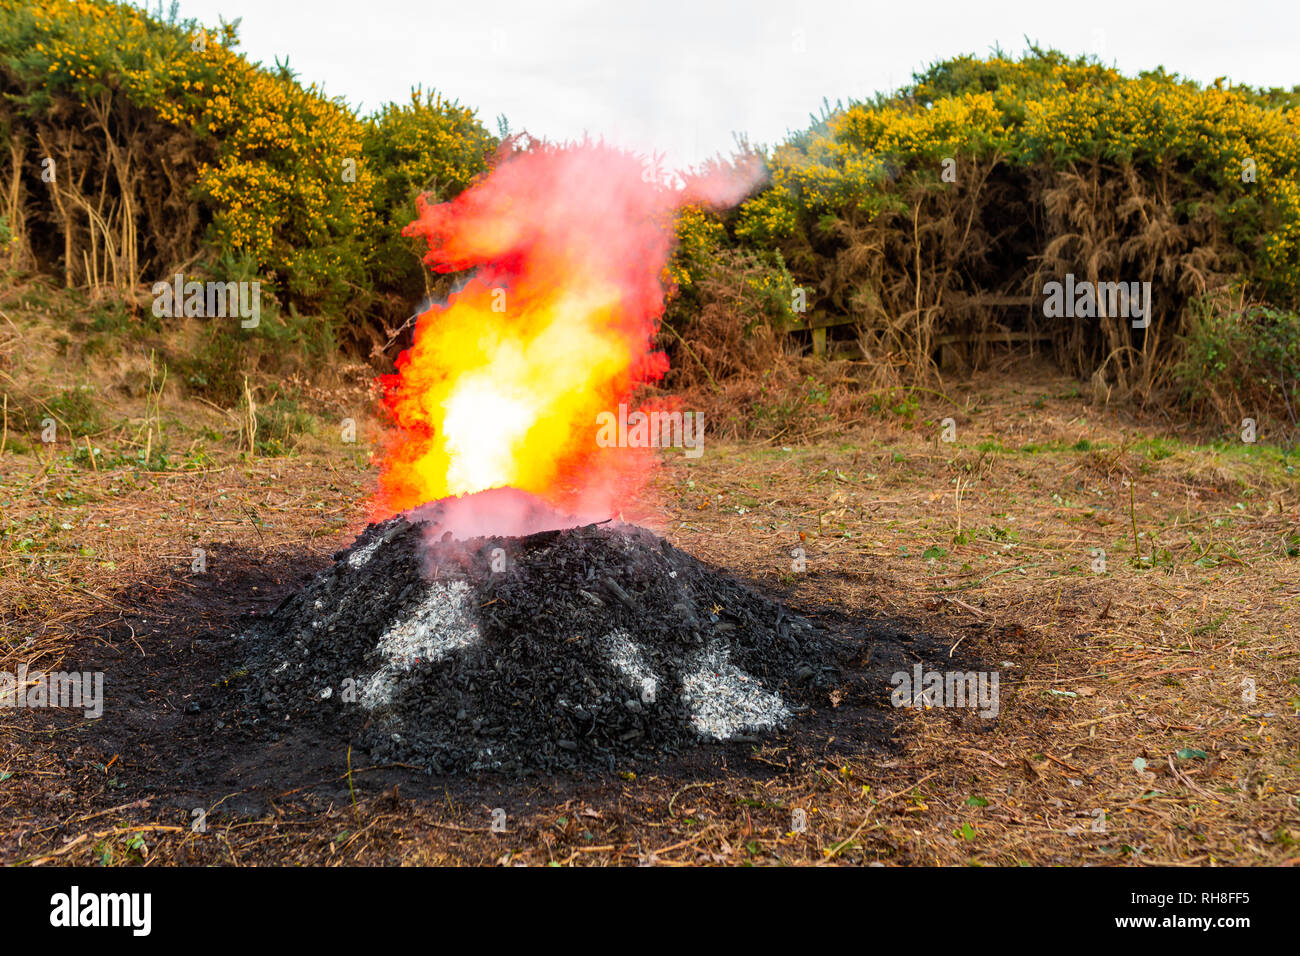 Recently extinguished bonfire which has been illuminated from behind with red flash making the steam appear as an explosive flame. - Stock Image